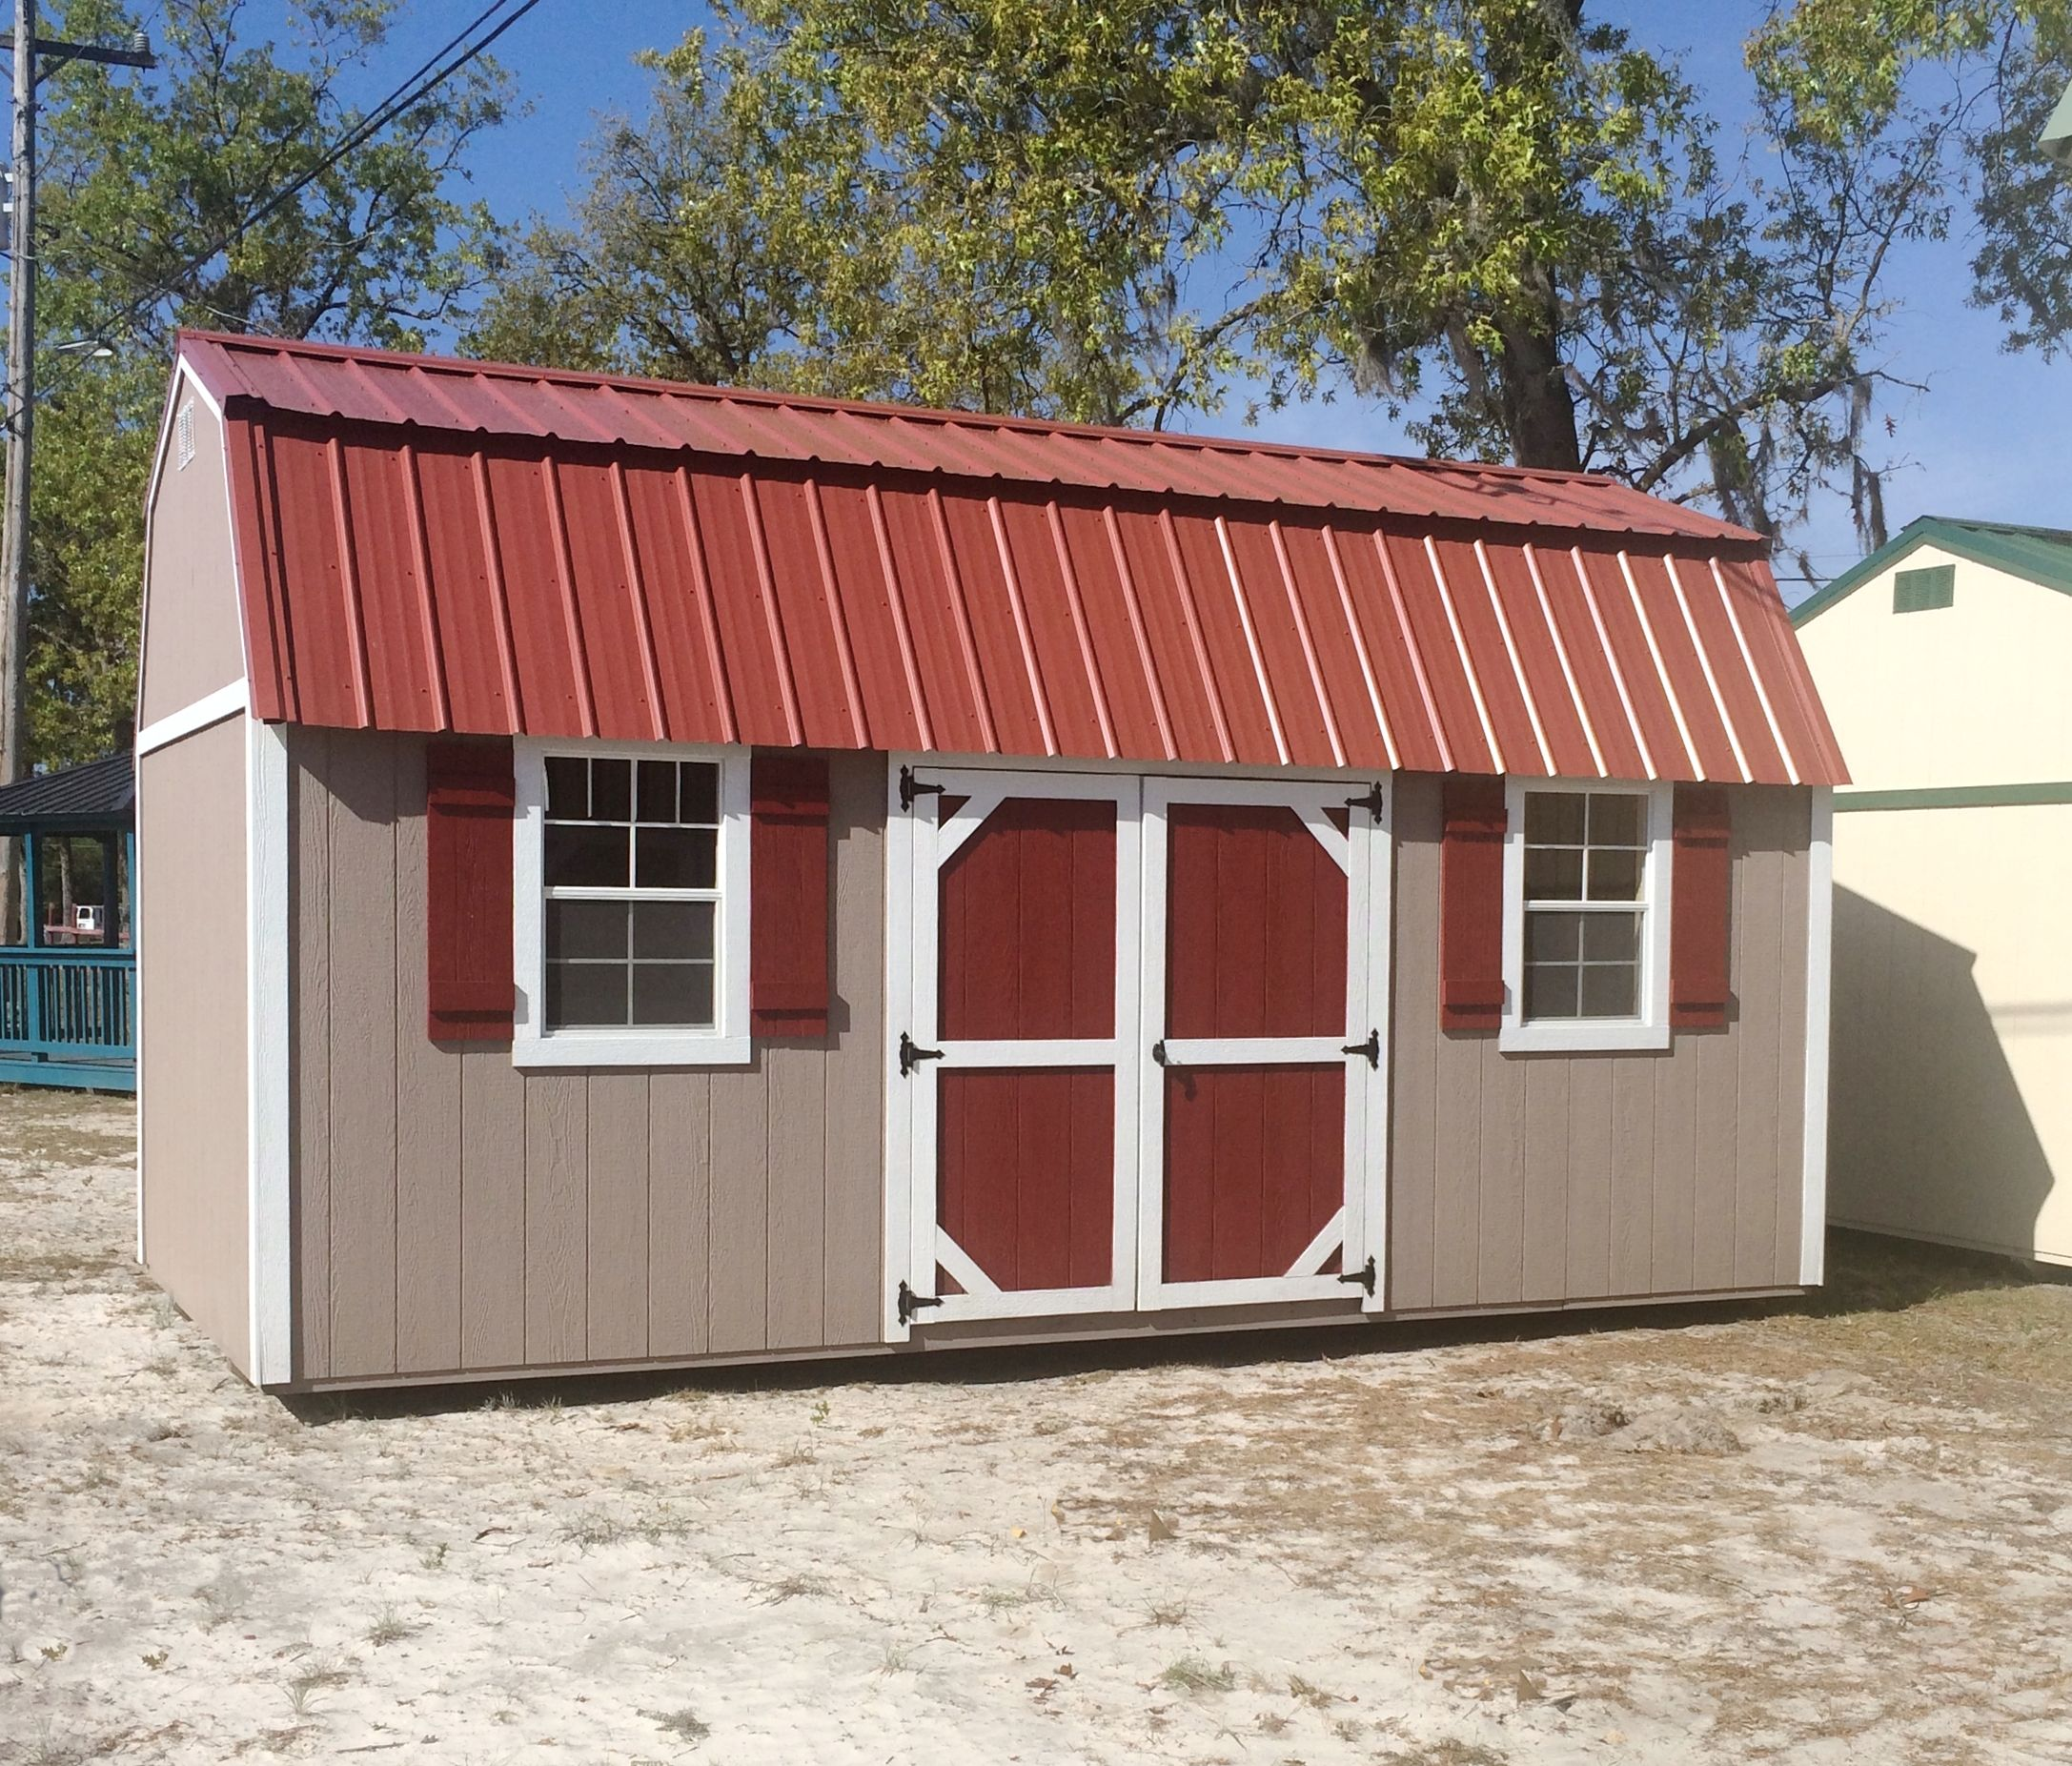 Coastal Portable Buildings Side Lofted Barn 10x20 with